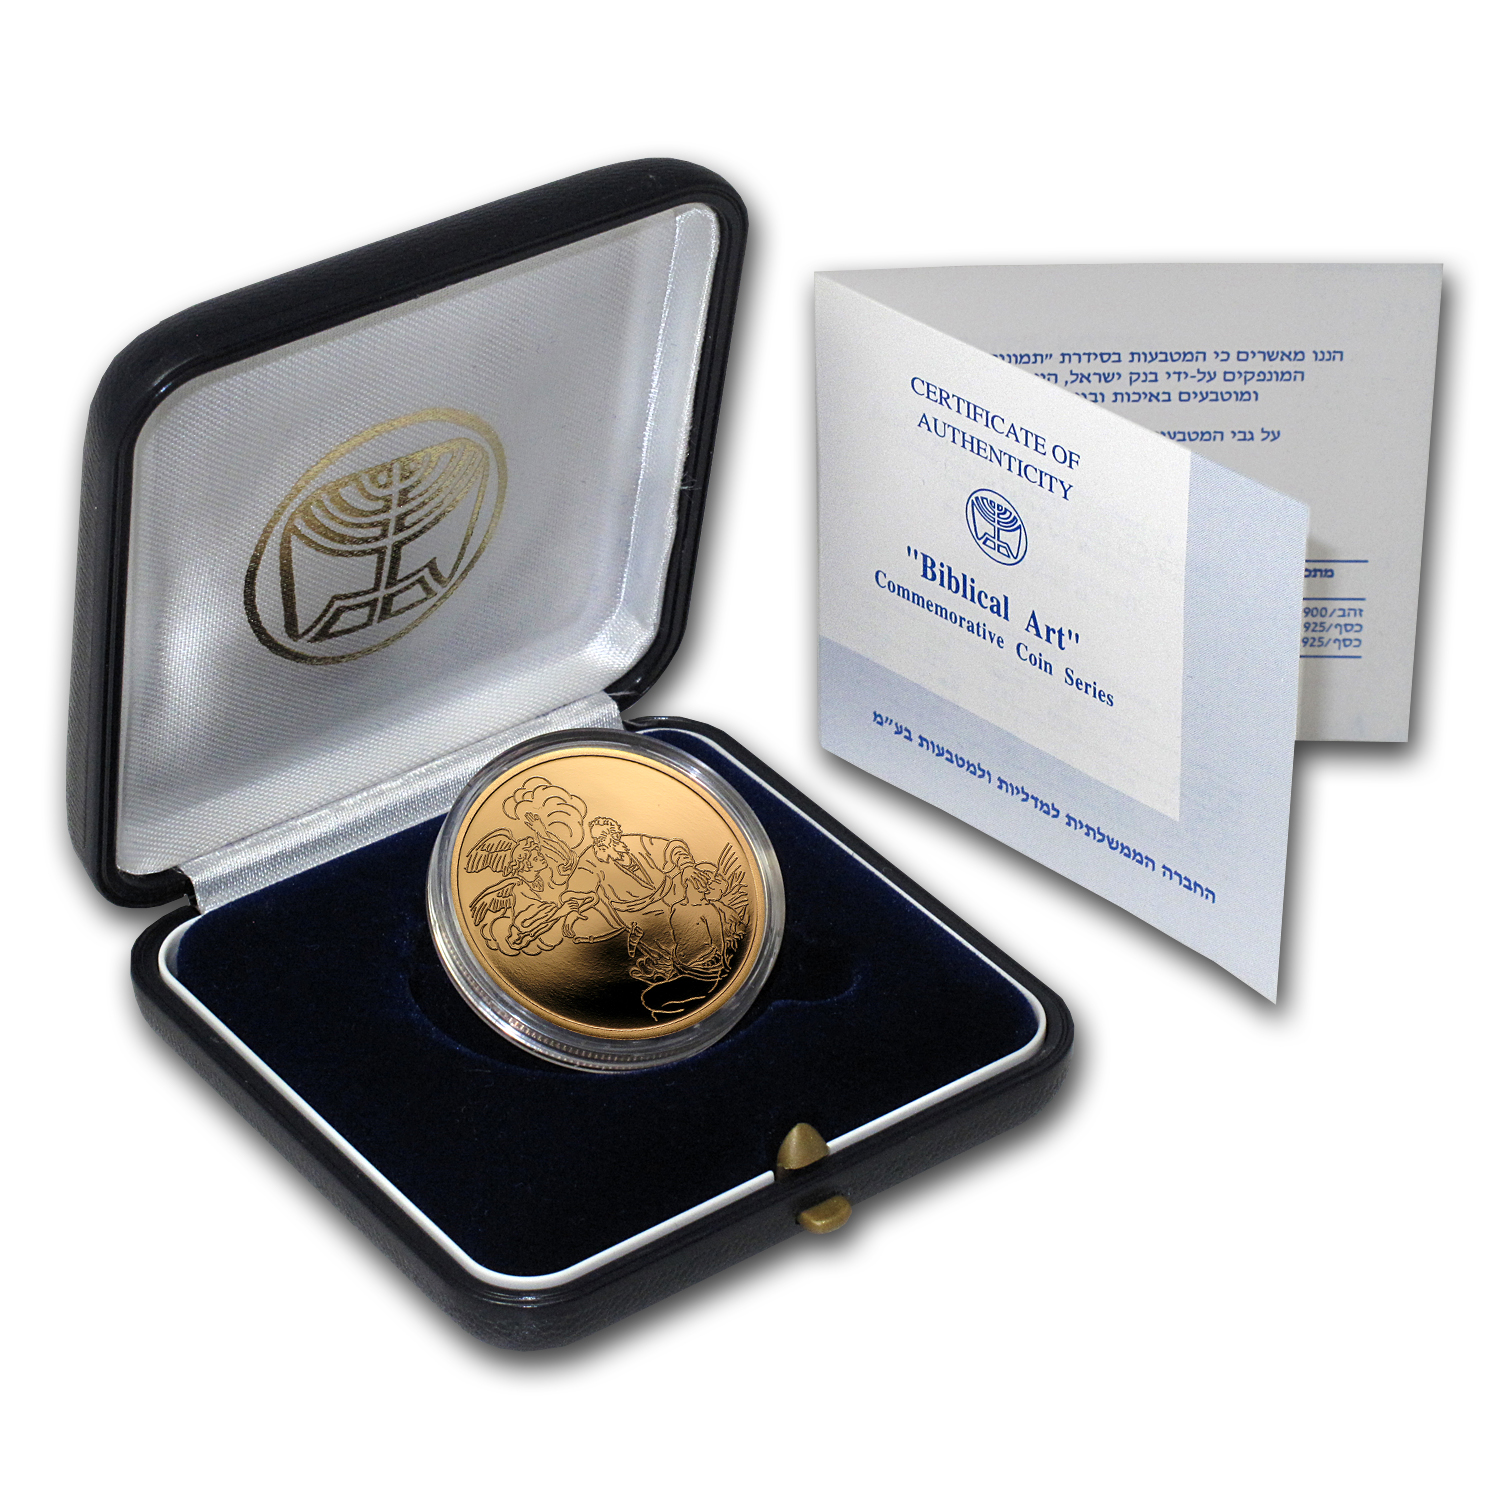 1994 Israel Binding of Isaac 1/2 oz Proof Gold Coin w/ box & coa